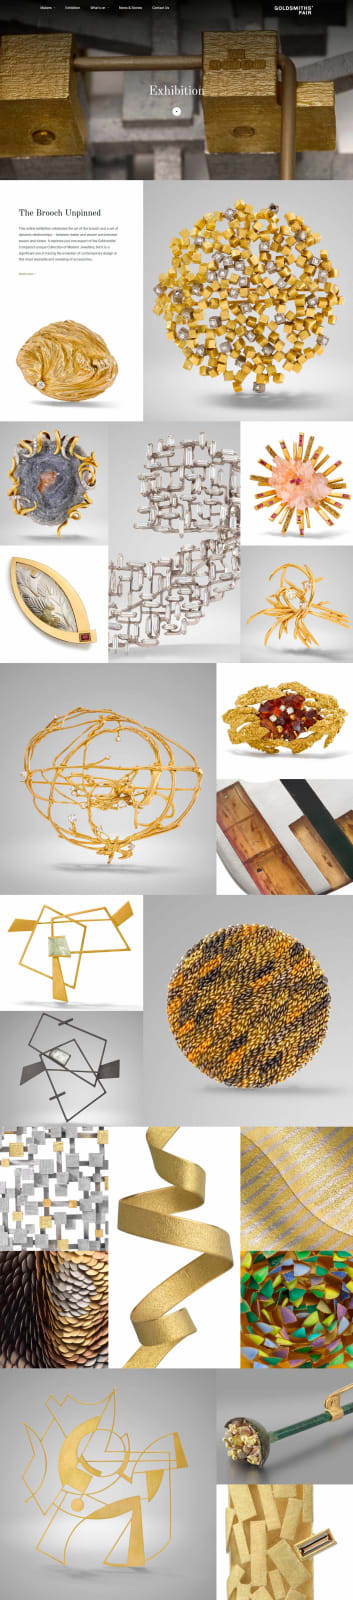 the brooch unpinned: the goldsmiths' company collection 1961–2020